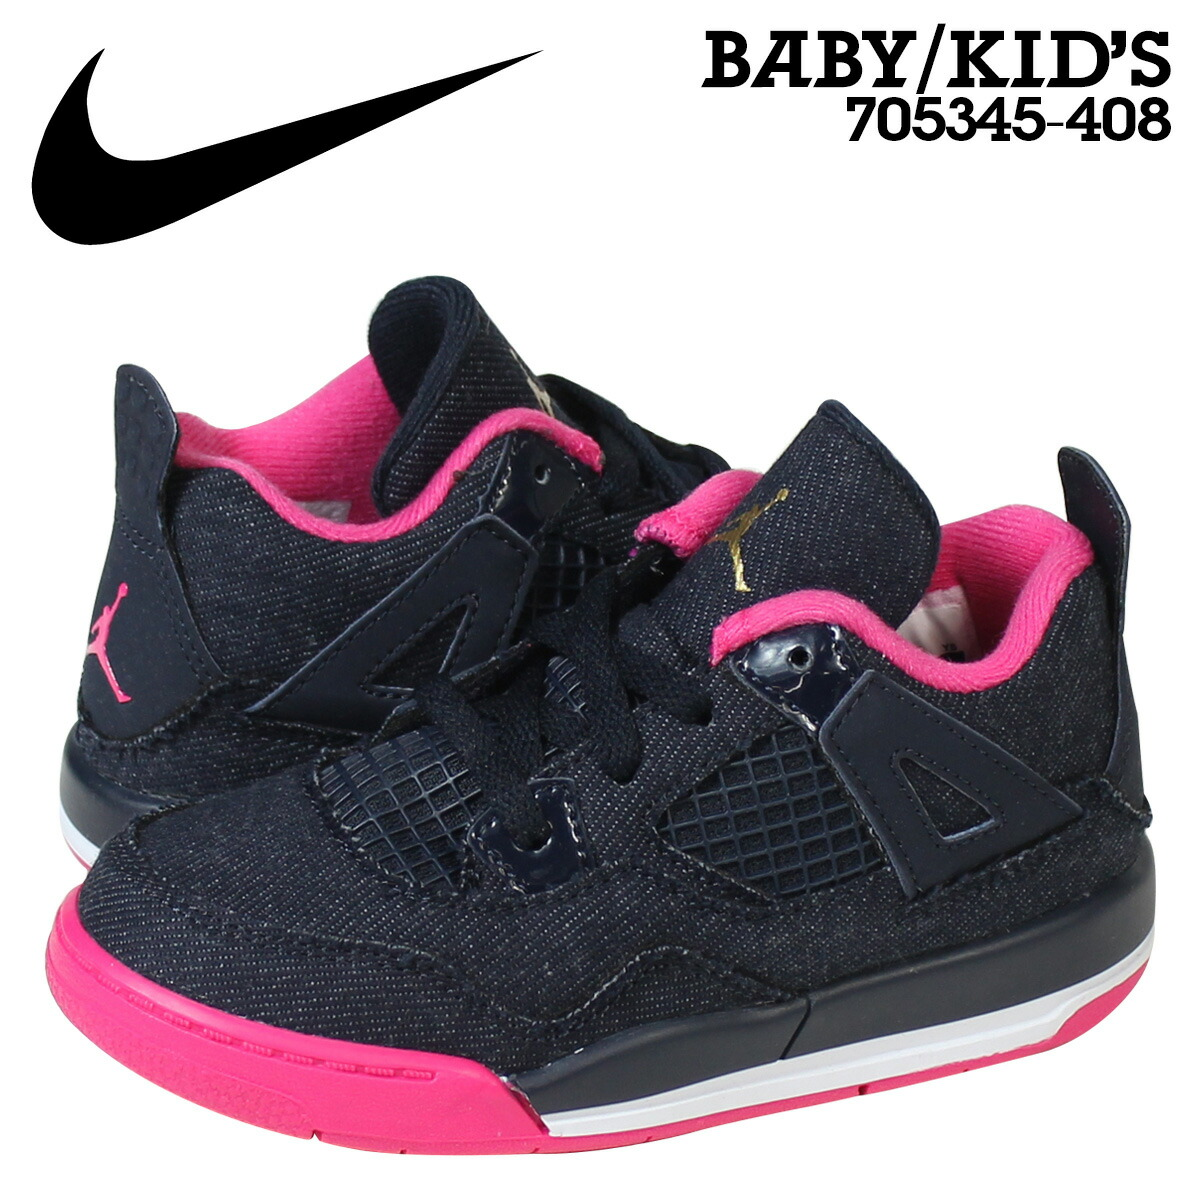 Baby Boys' Shoes: Find shoes for baby boys that work with all types of personality and style. From the signature sneakers of his soon-to-be favorite basketball stars to tried-and-true classics like the Air Max 90, the Nike collection of baby boy shoes has the styles and colorways to .